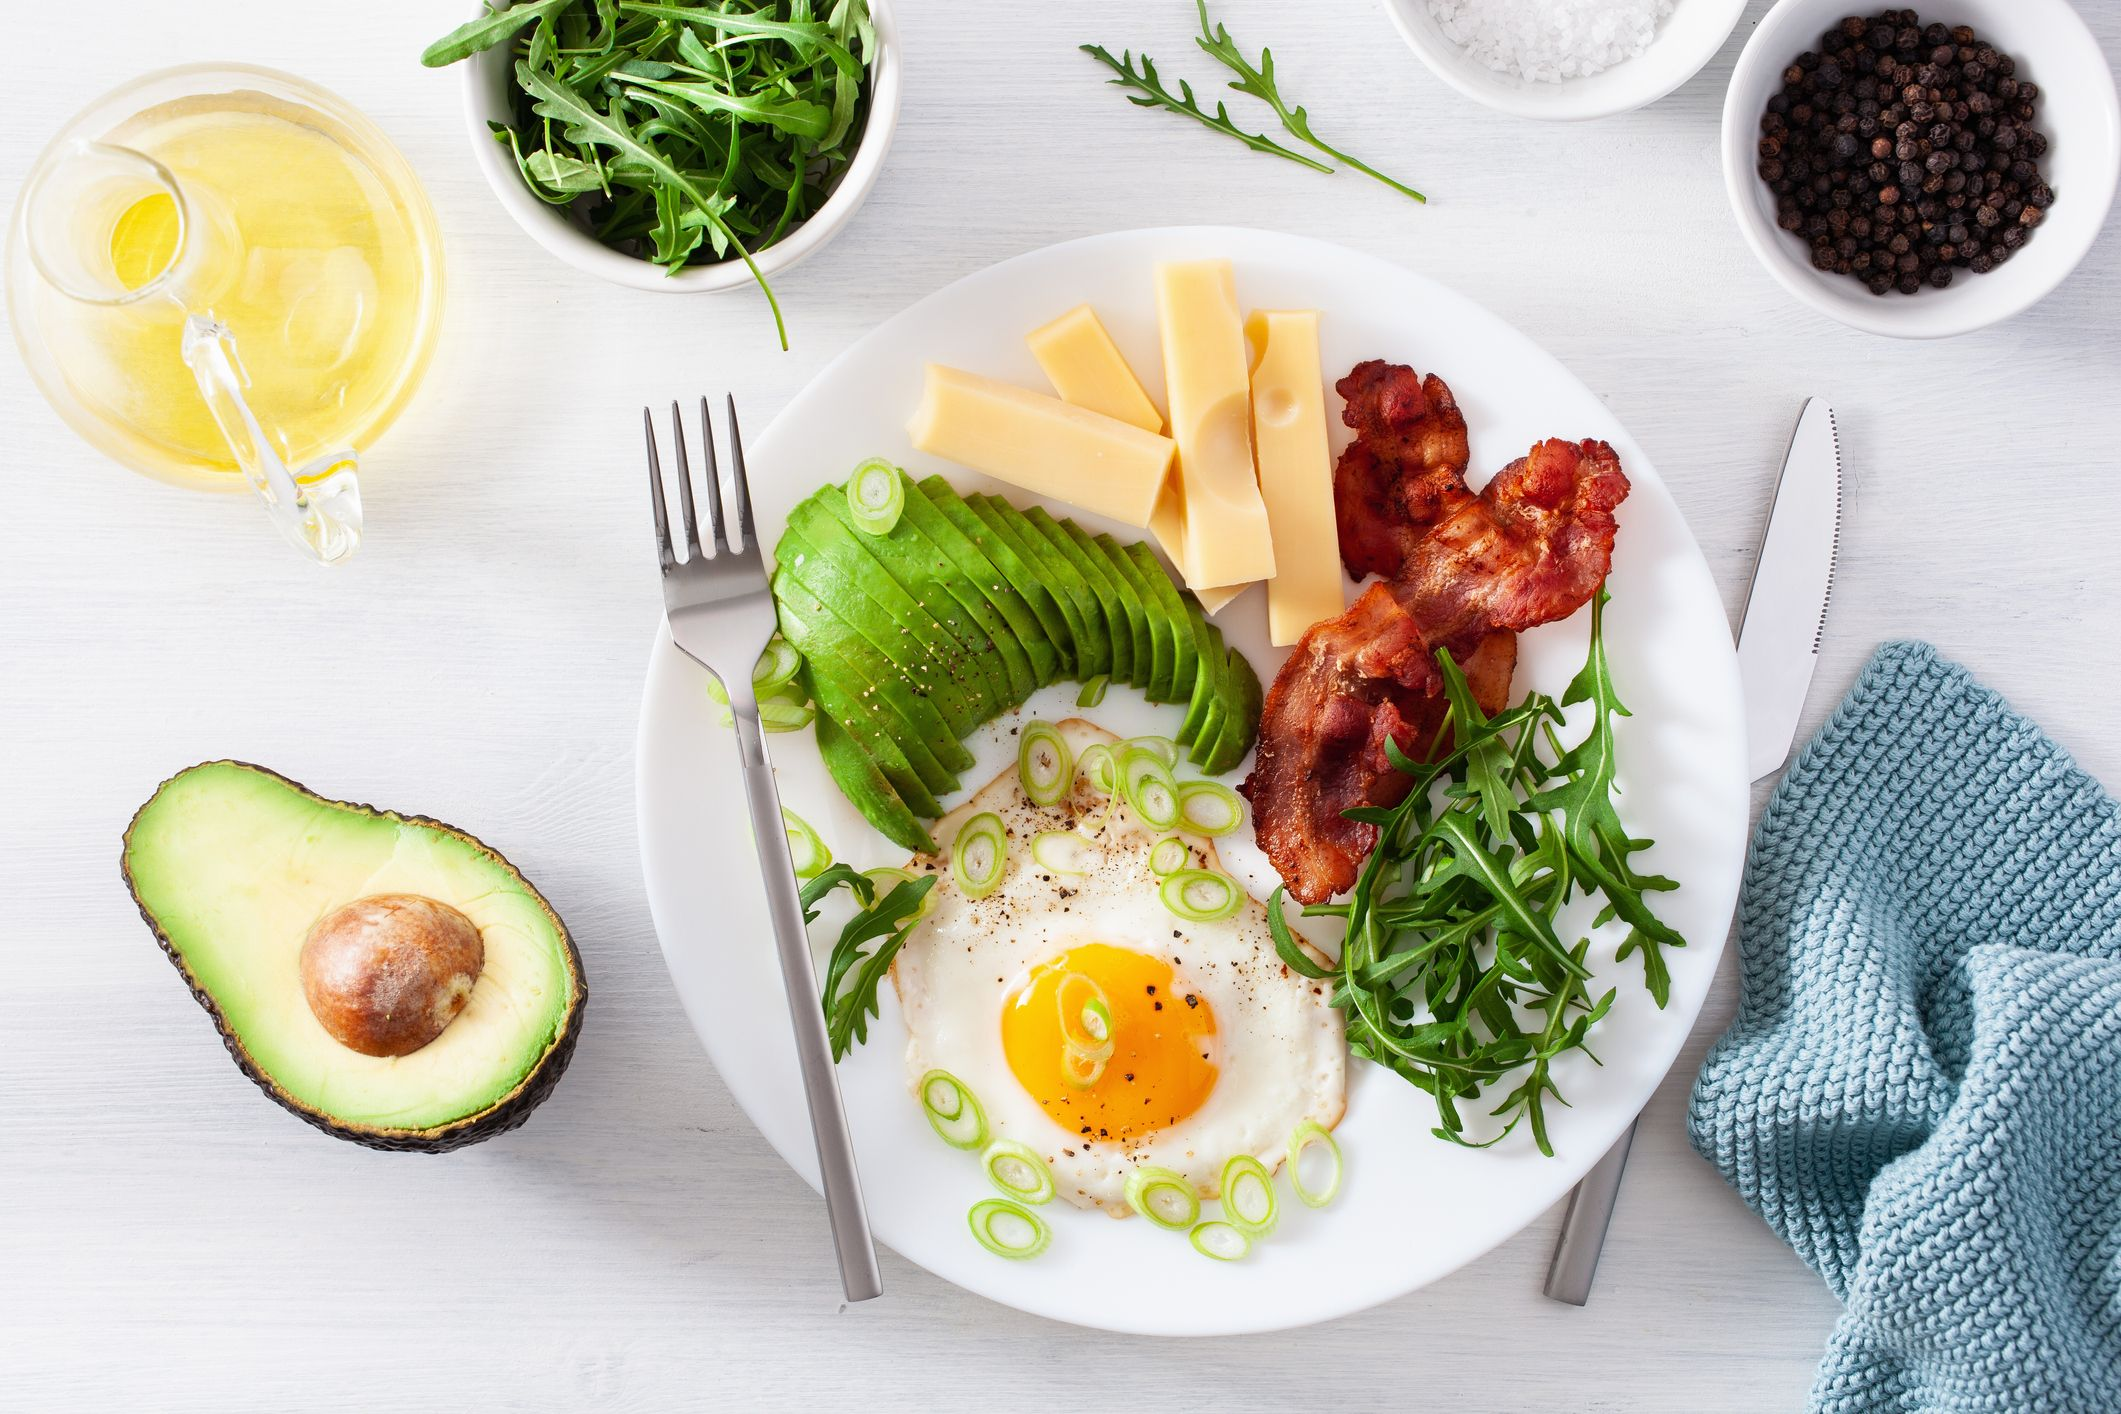 Low Carb vs Keto - What's the difference?